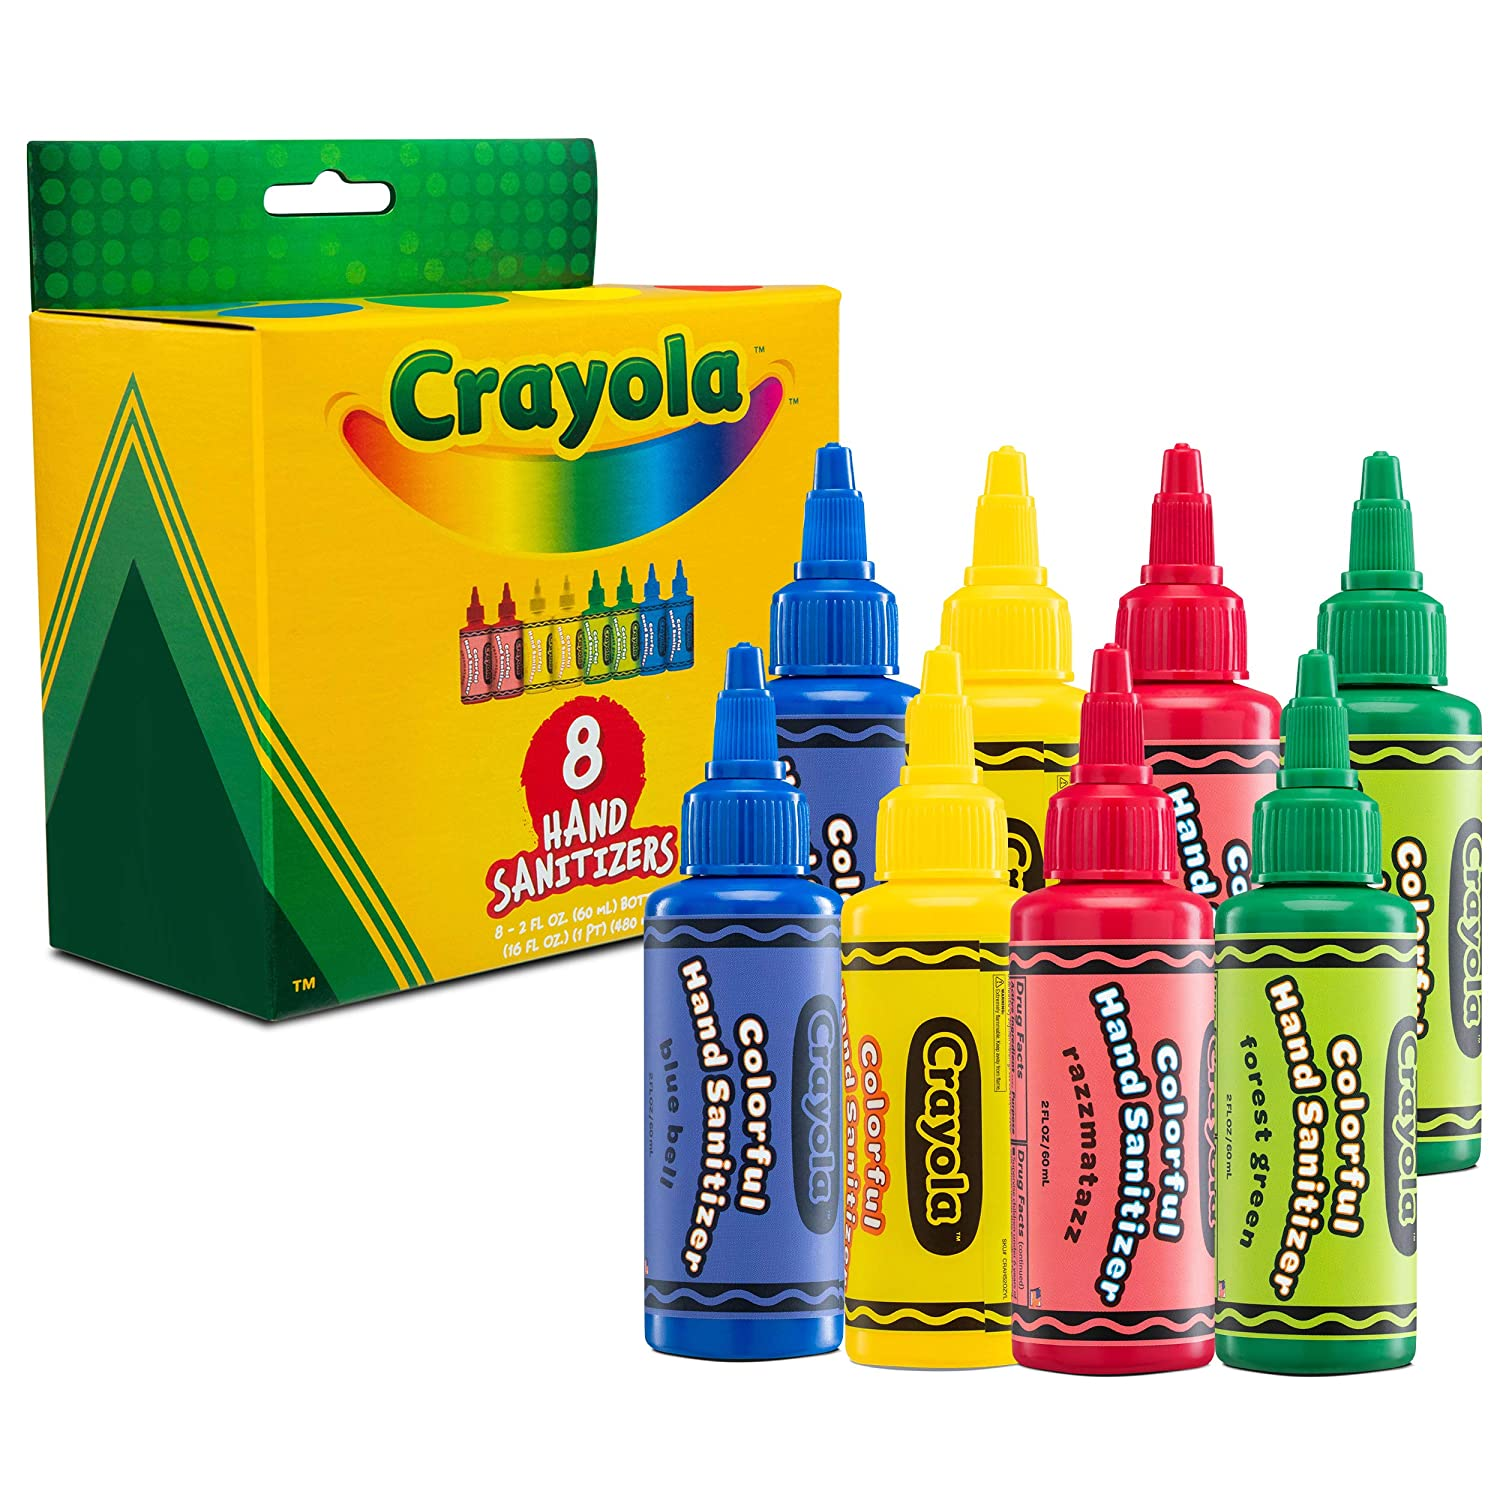 Crayola Hand Sanitizer for Kids | Antibacterial Hand Gel w/75% Alcohol for School Backpack | Kills 99.99% of Germs, Safe for Skin, Soft on Hands, Made in USA | Pack of 8 2oz Mini Travel Size Bottles